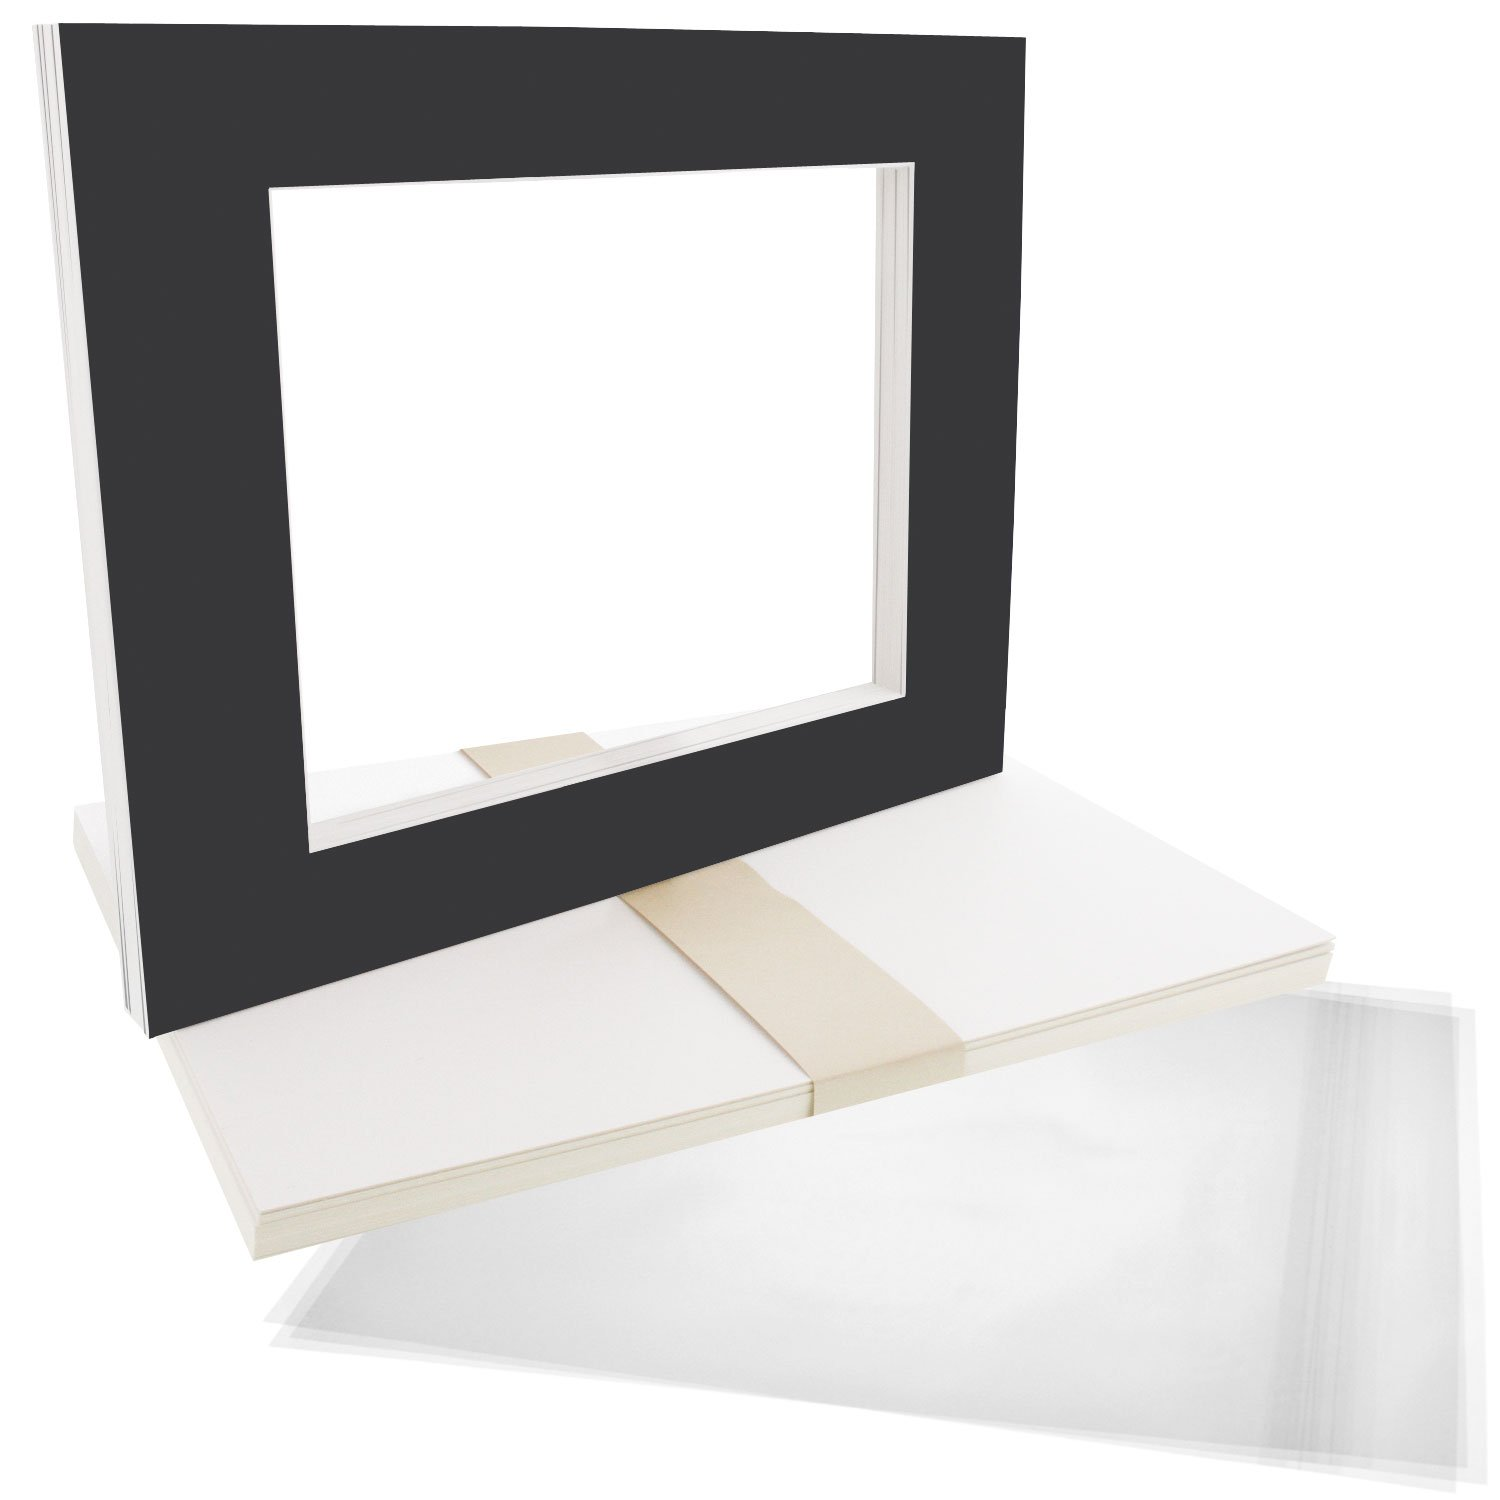 US Art Supply Art Mats Brand Premier Acid-Free Pre-Cut 16x20 Black Picture Mat Matte Sets. Includes a White Core Bevel Cut Mattes for 11x14 Photos, Backers & Crystal Clear Plastic Sleeves Bags. by US Art Supply USA B16X20-MATSET-10